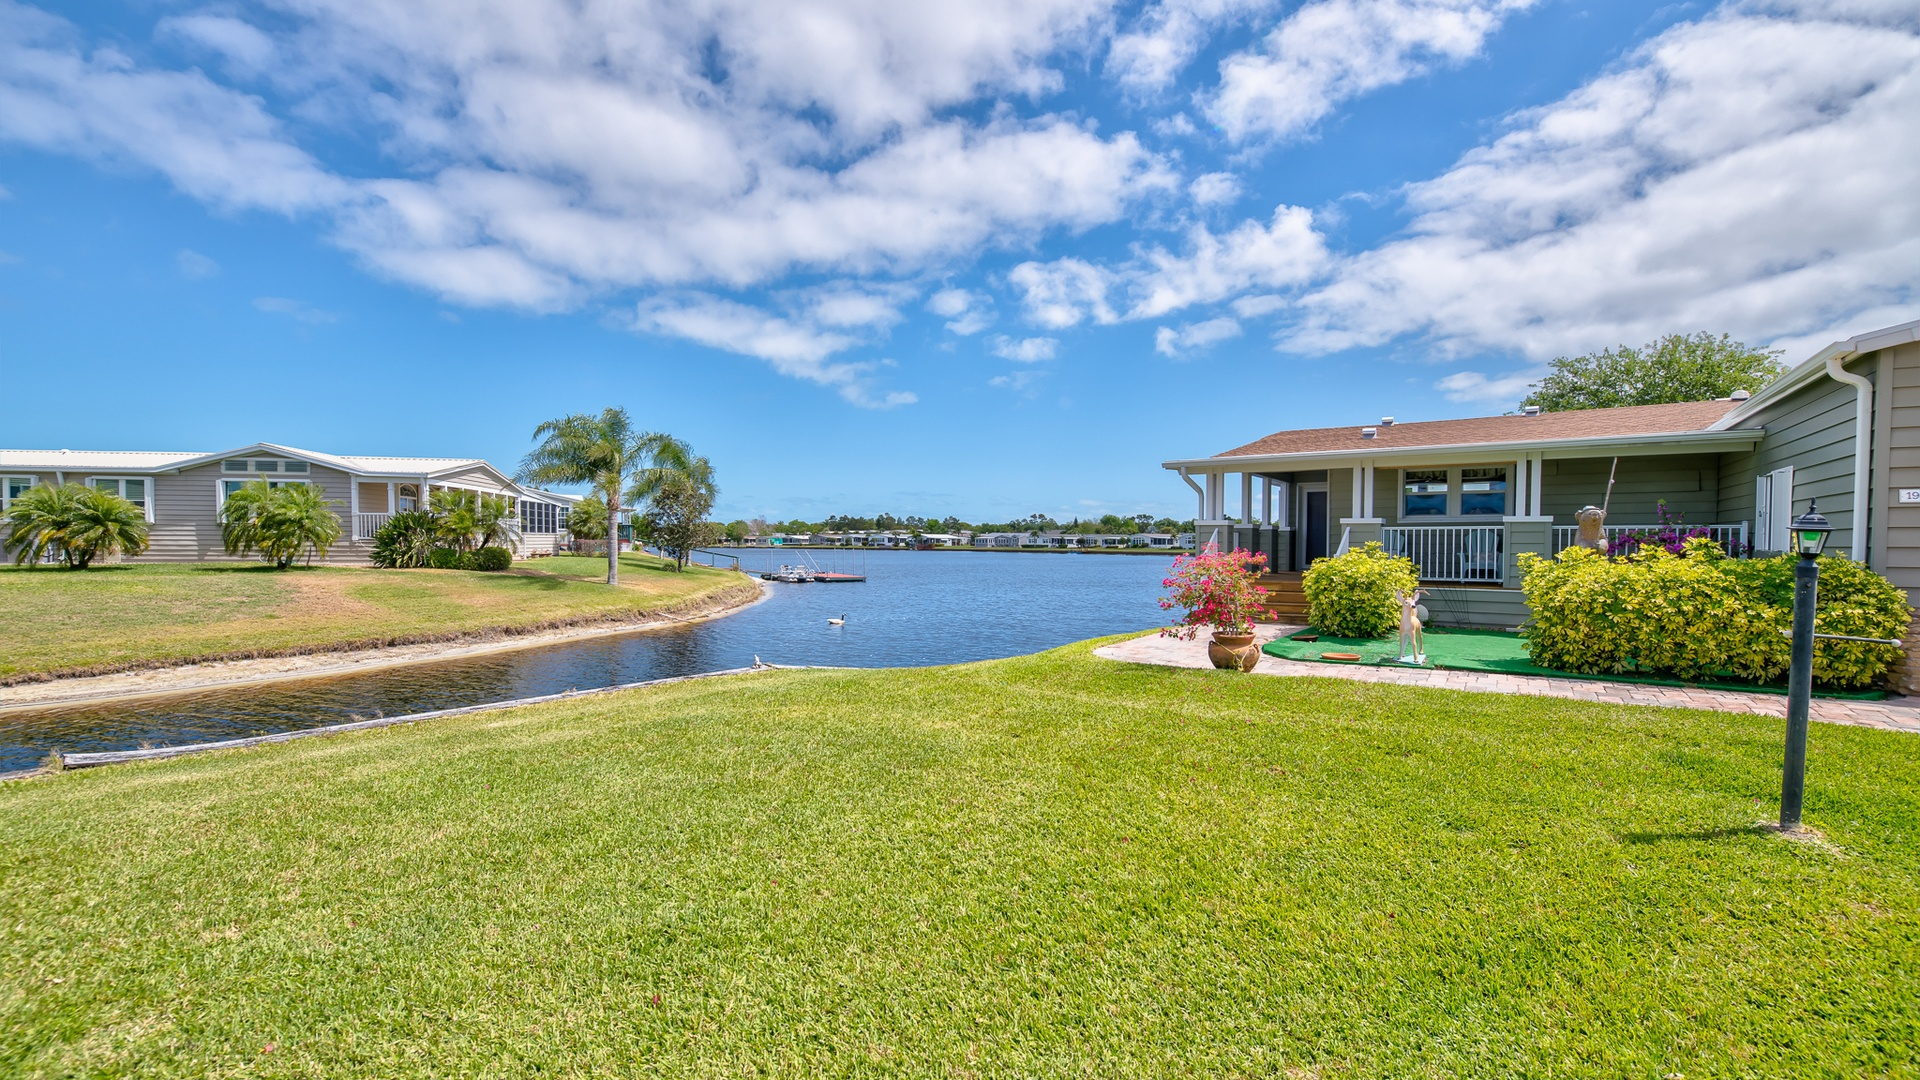 Park Place 55+ Manufactured Homes Community Lakefront in Sebastian, FL